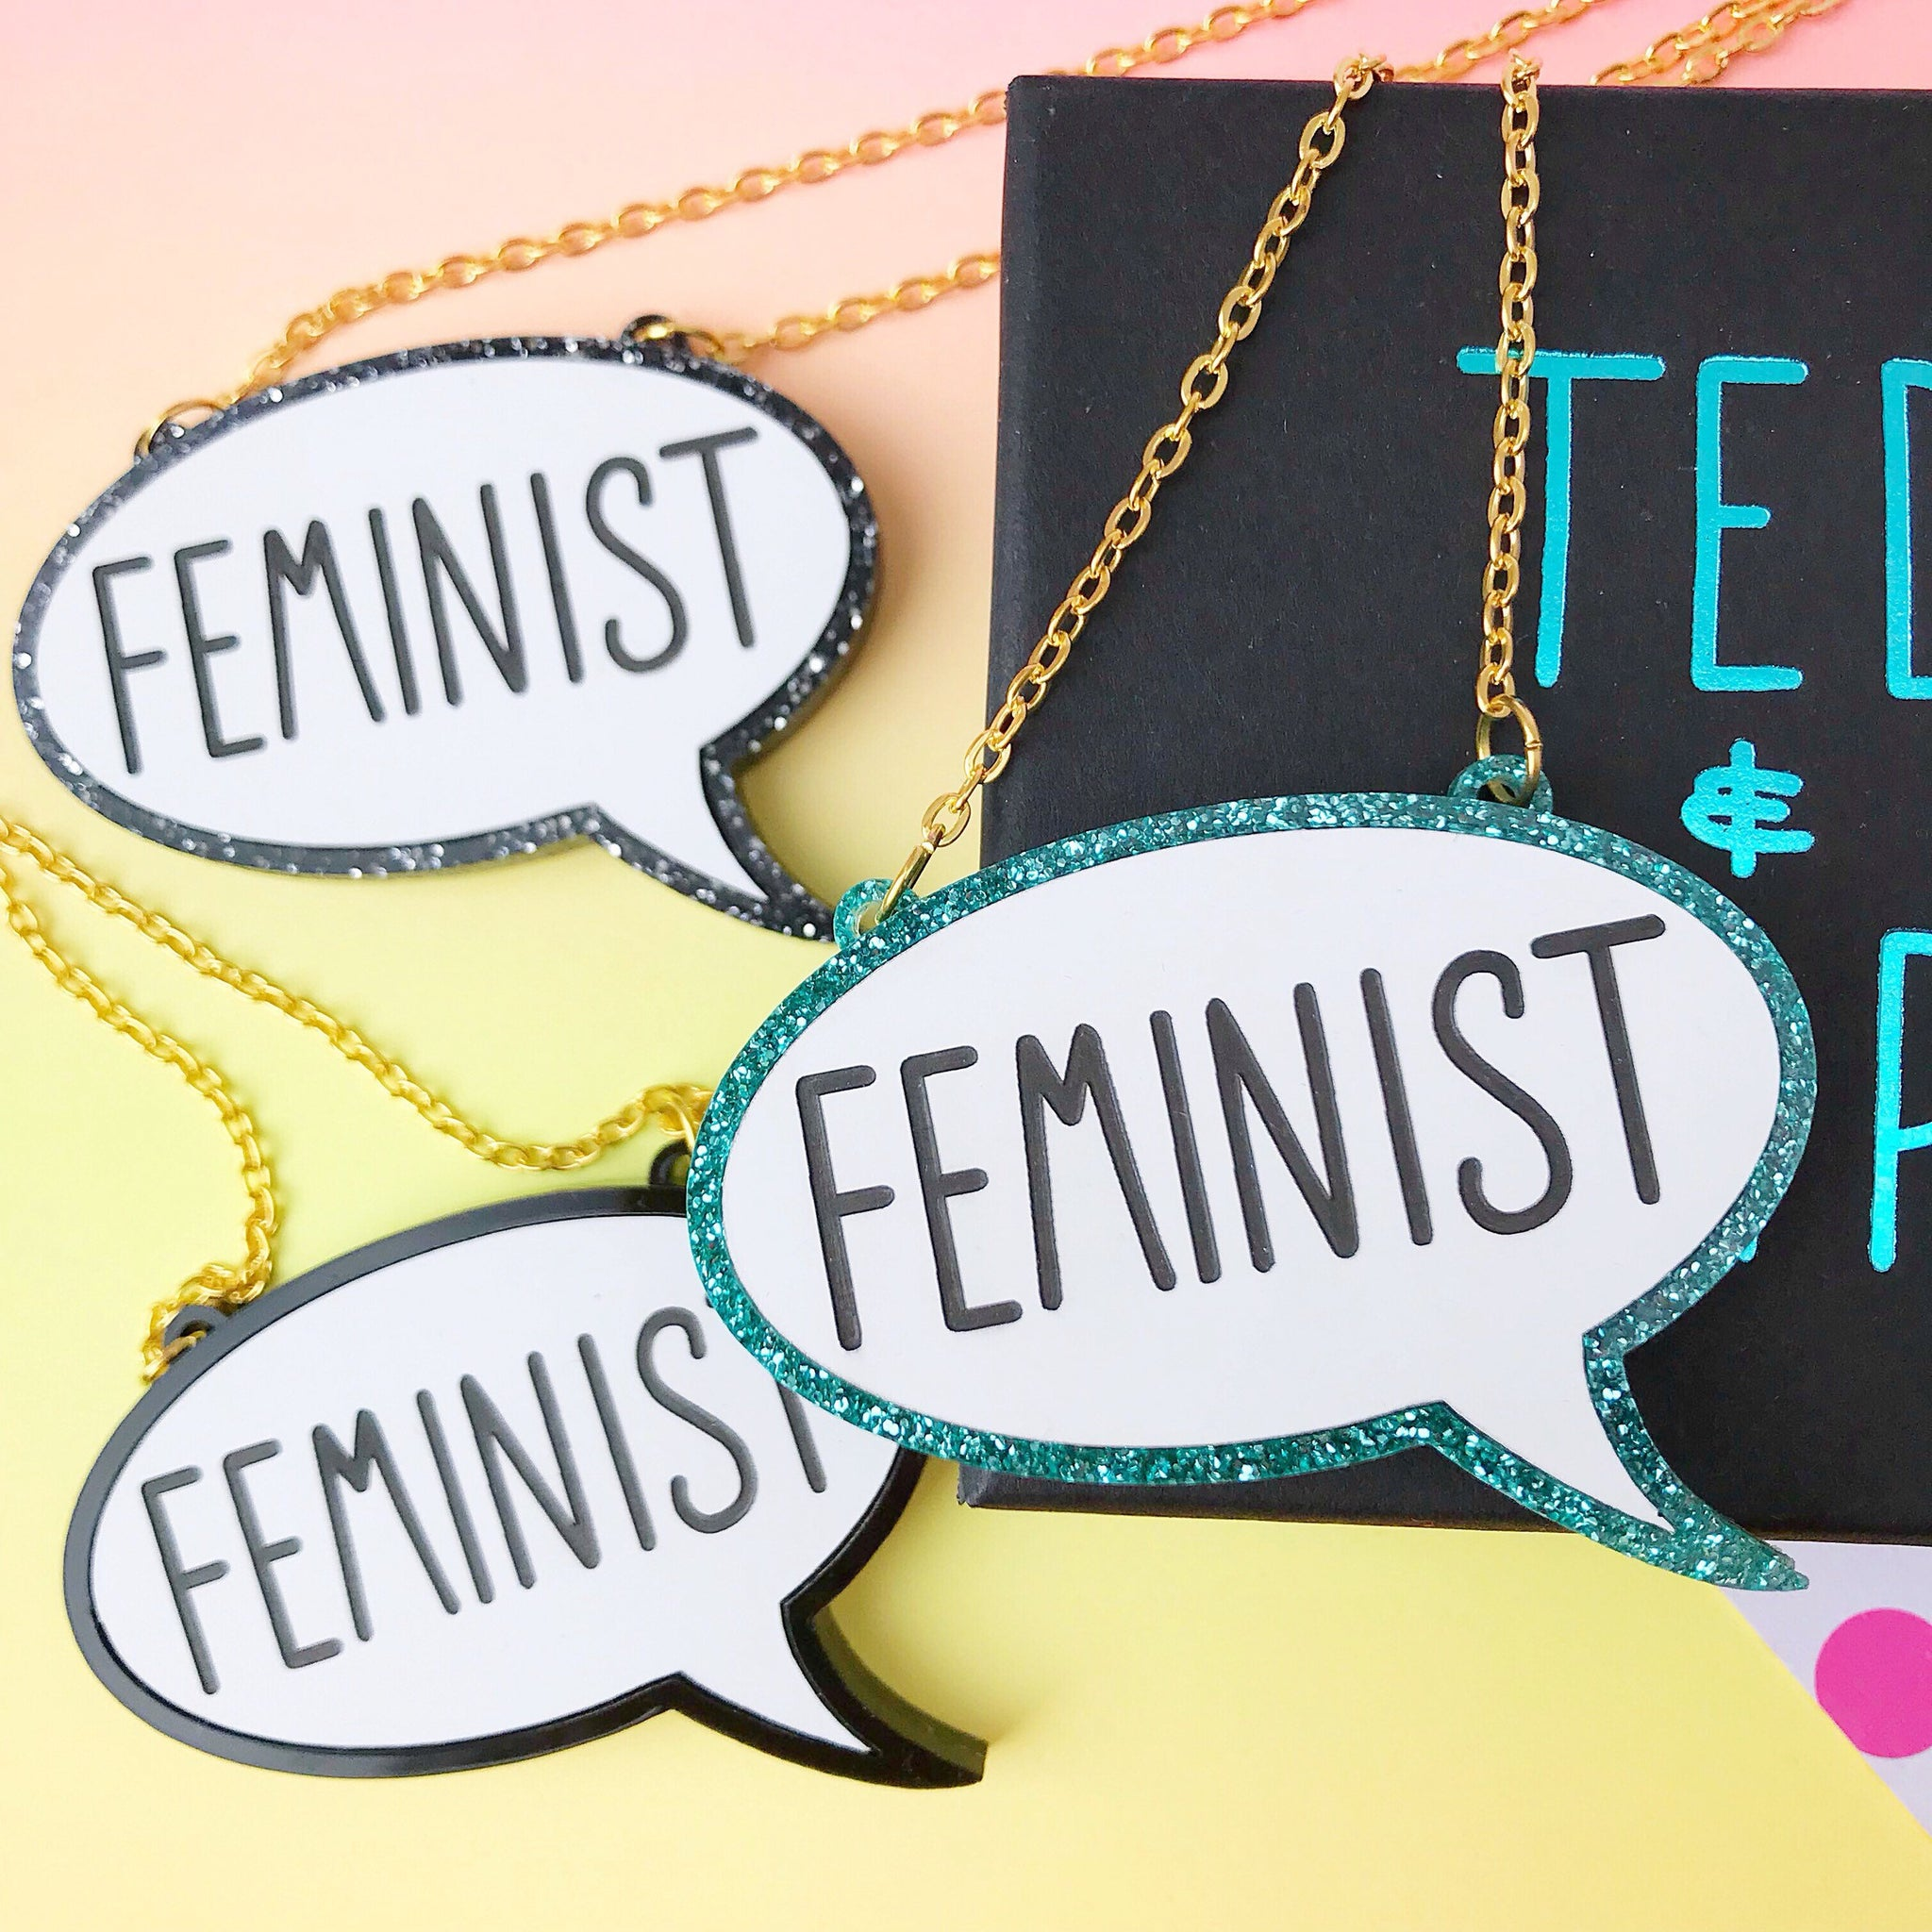 Feminist Acrylic Necklace